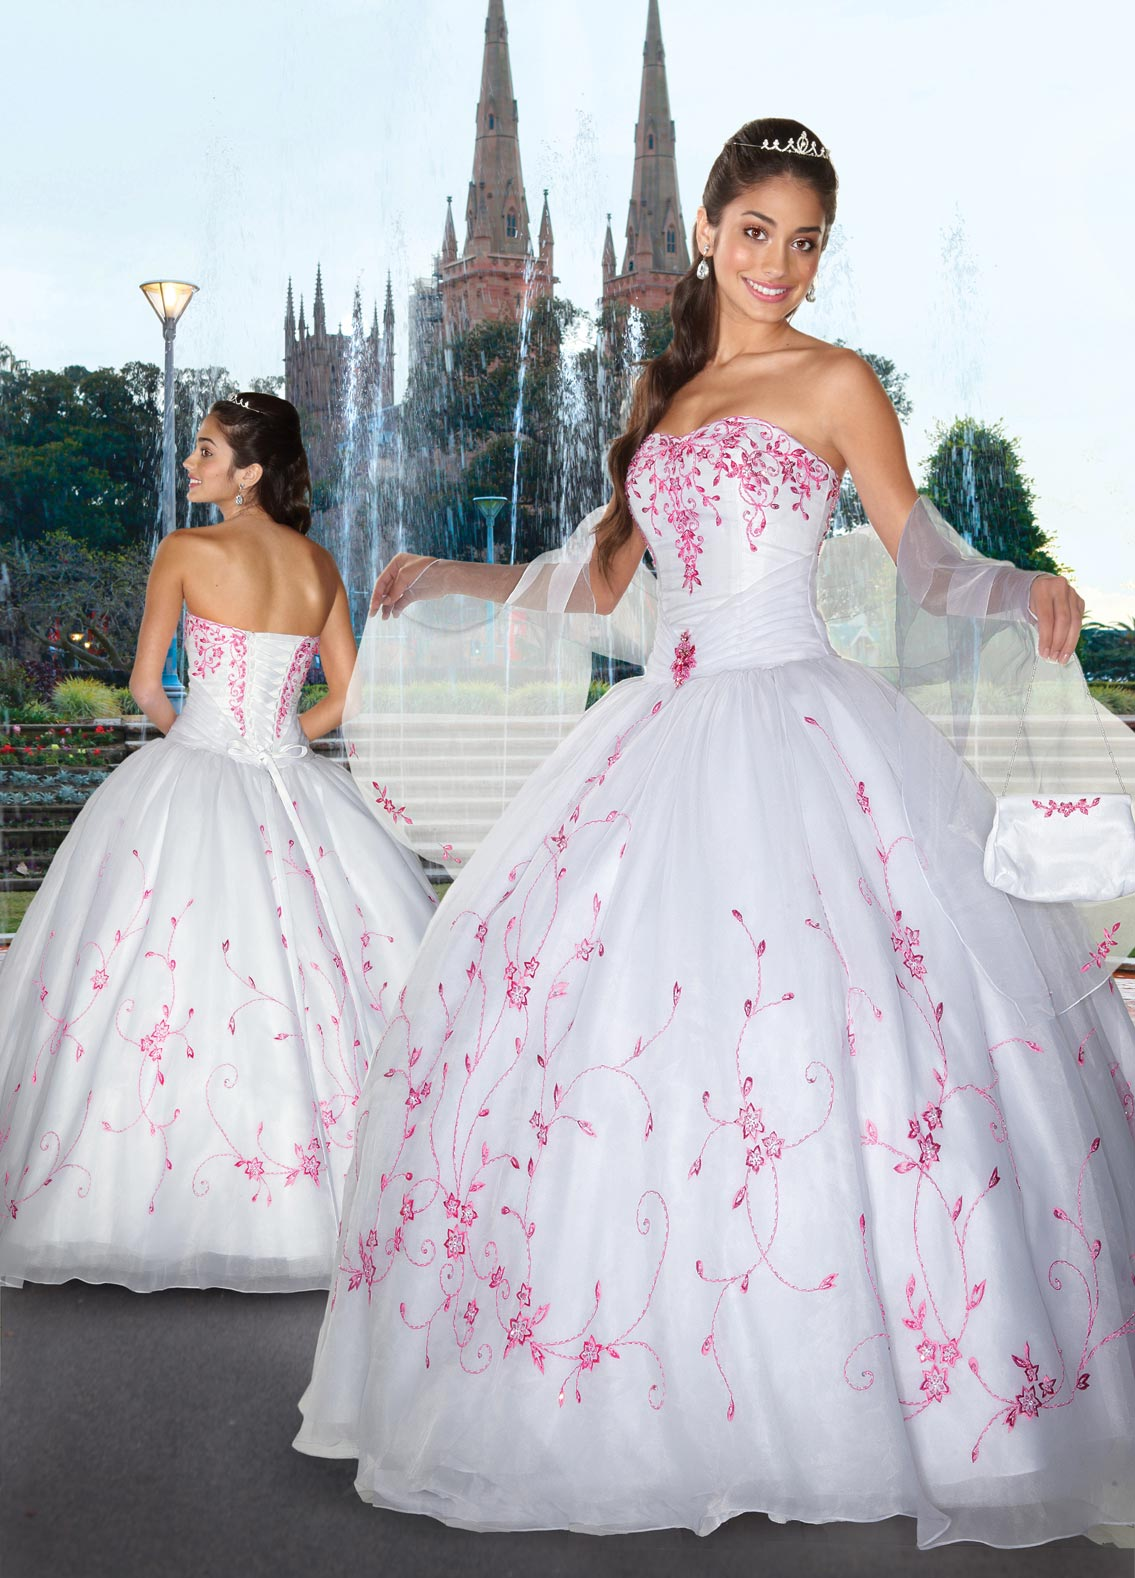 32f5493cc White Ball Gown Strapless Sweetheart Lace up Full Length Quinceanera Dresses  With Pink Embroidery